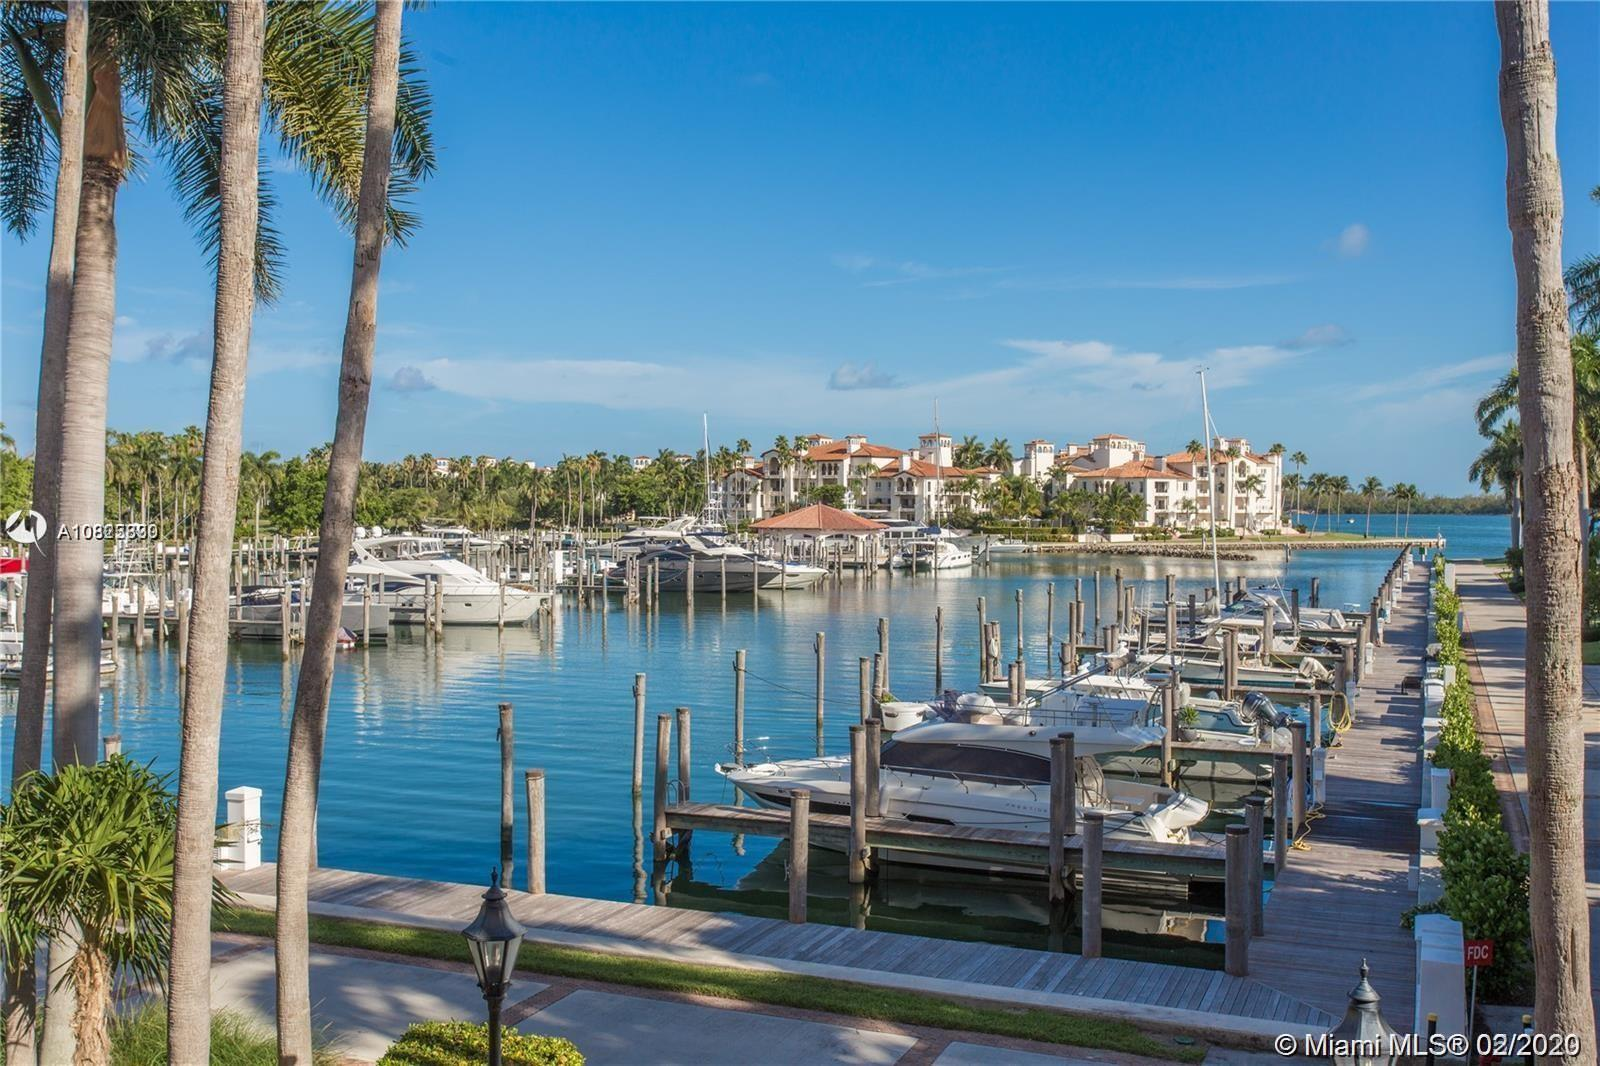 42207  Fisher Island Dr #42207 For Sale A10825830, FL